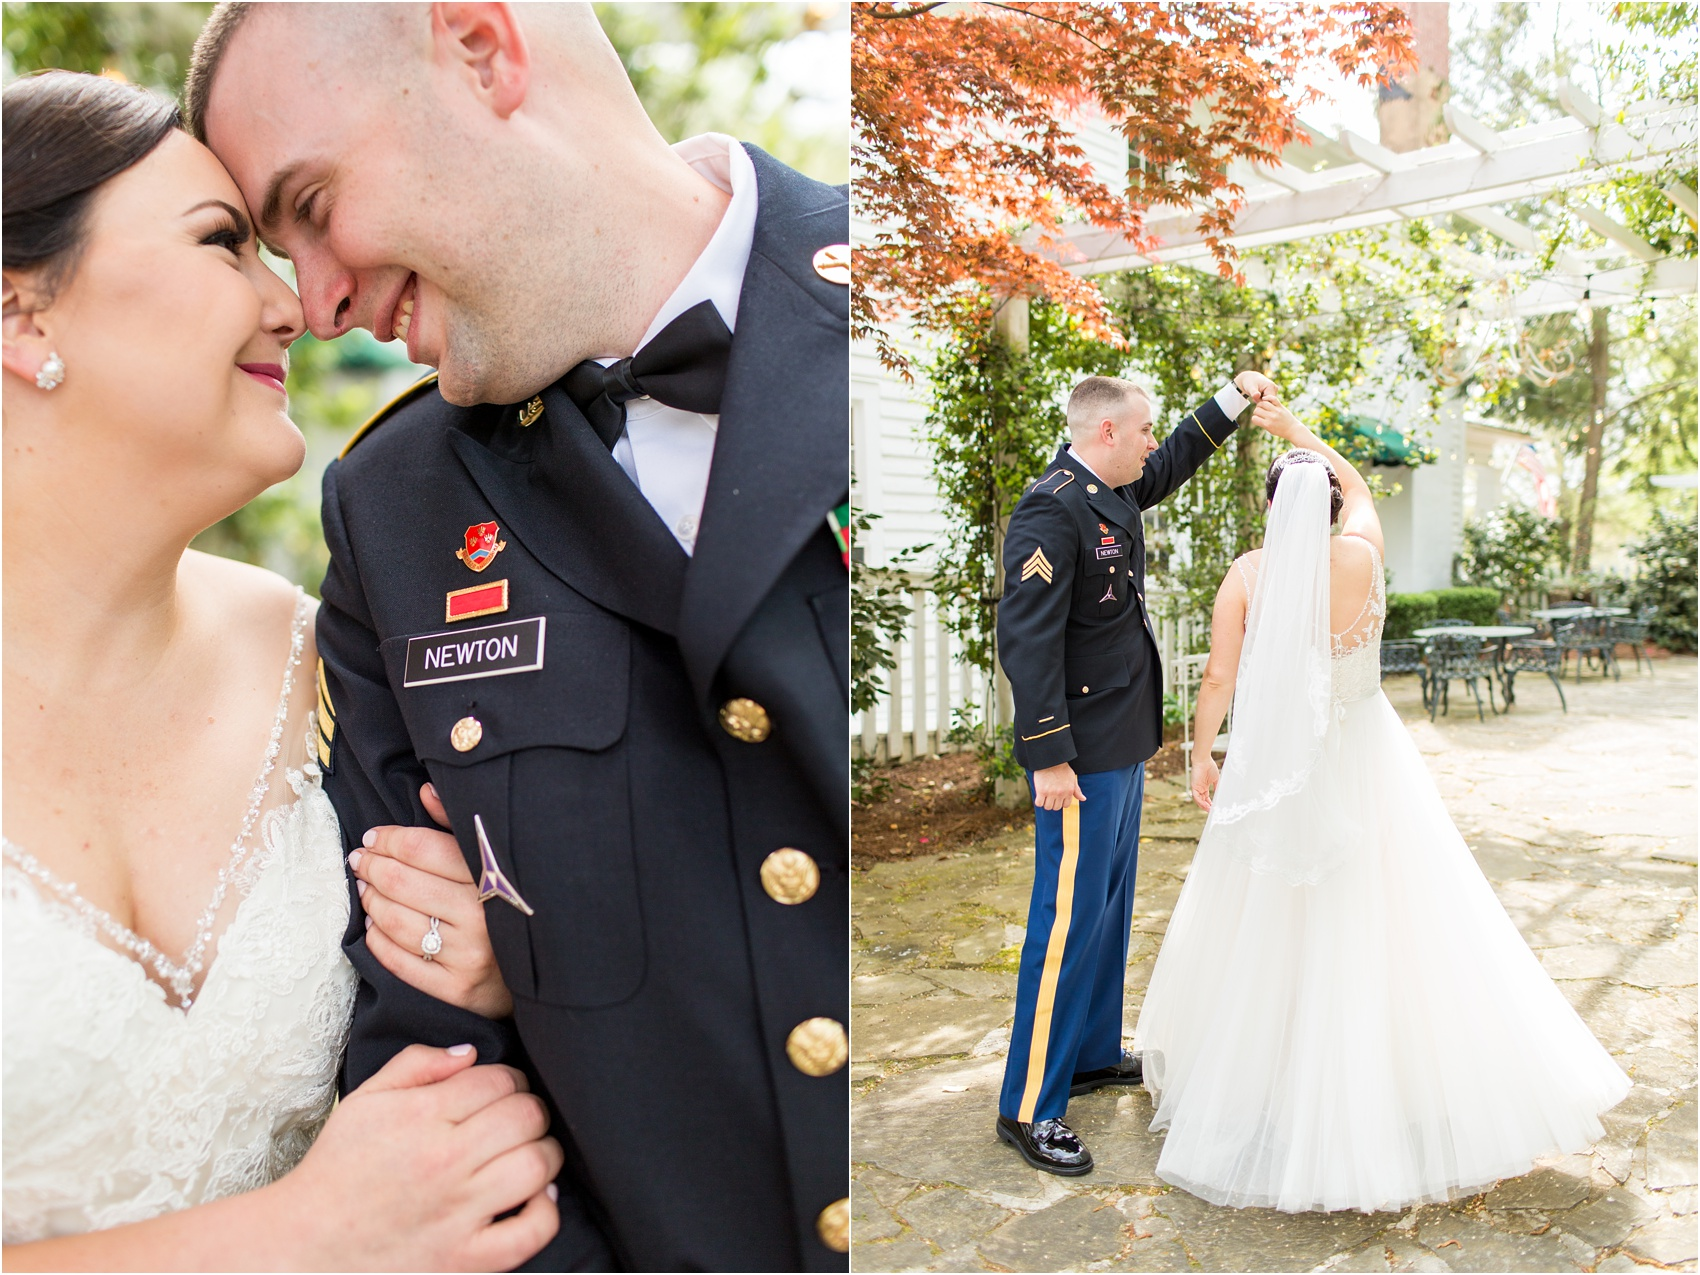 Savannah Eve Photography- Newton Wedding- Blog-51.jpg